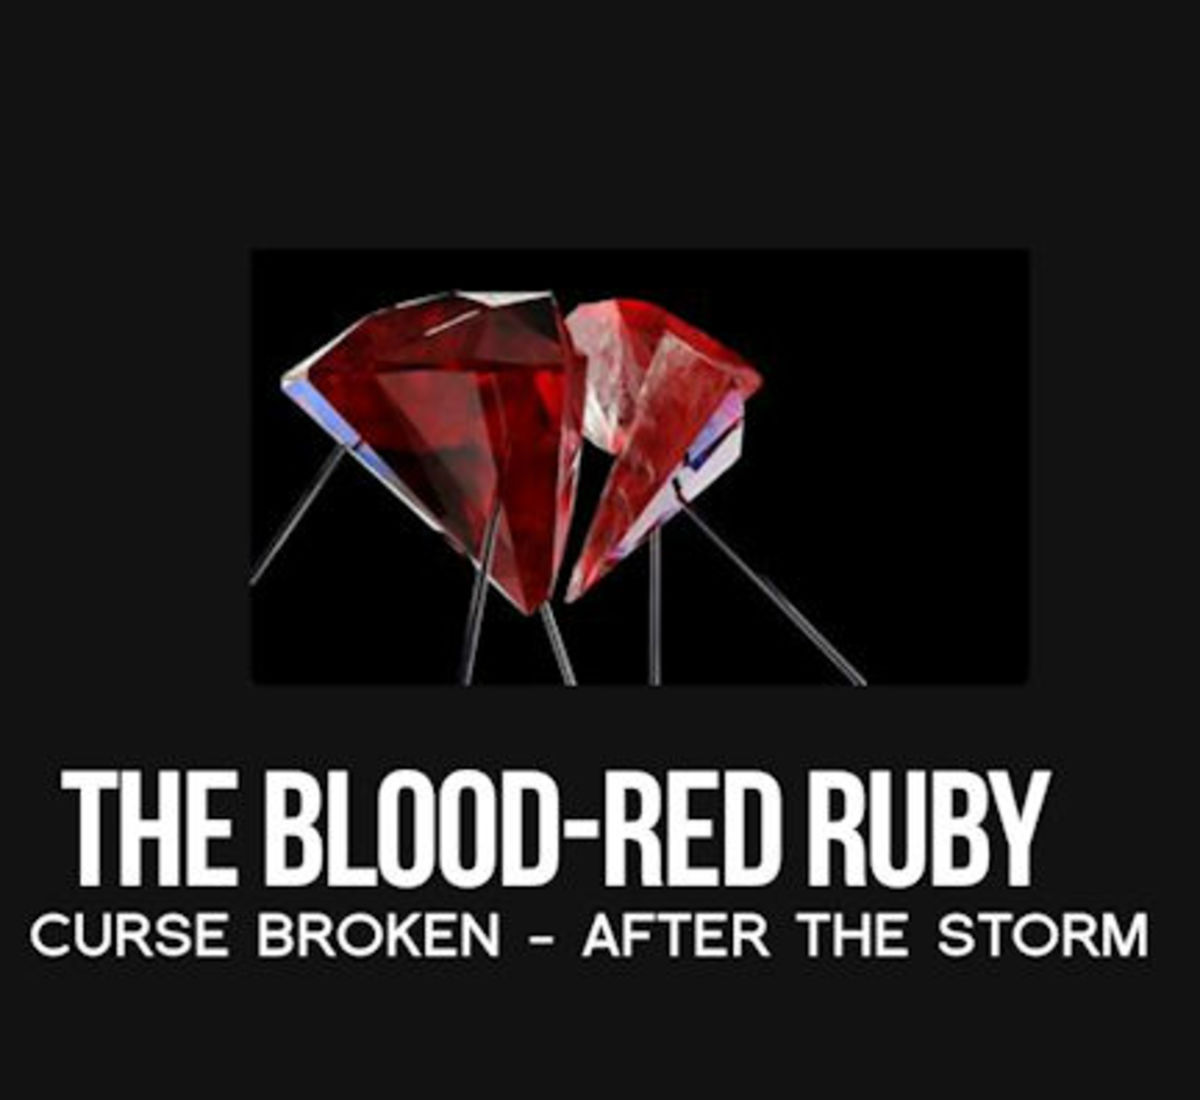 The Blood-Red Ruby: After the Storm